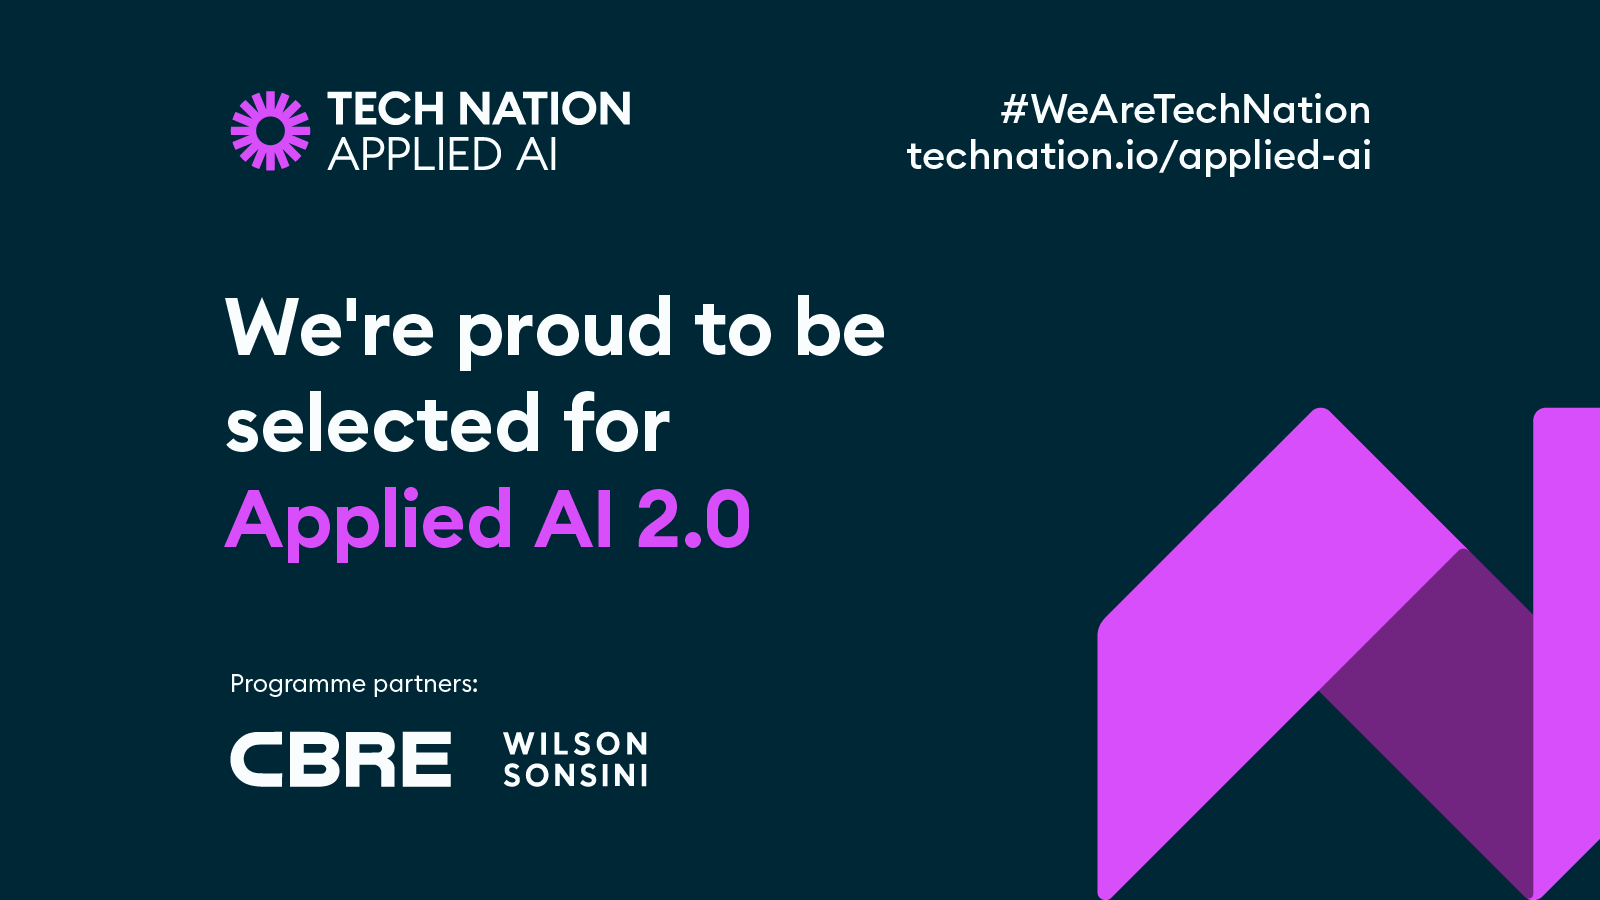 SATAVIA joins Tech Nation's Applied AI 2.0